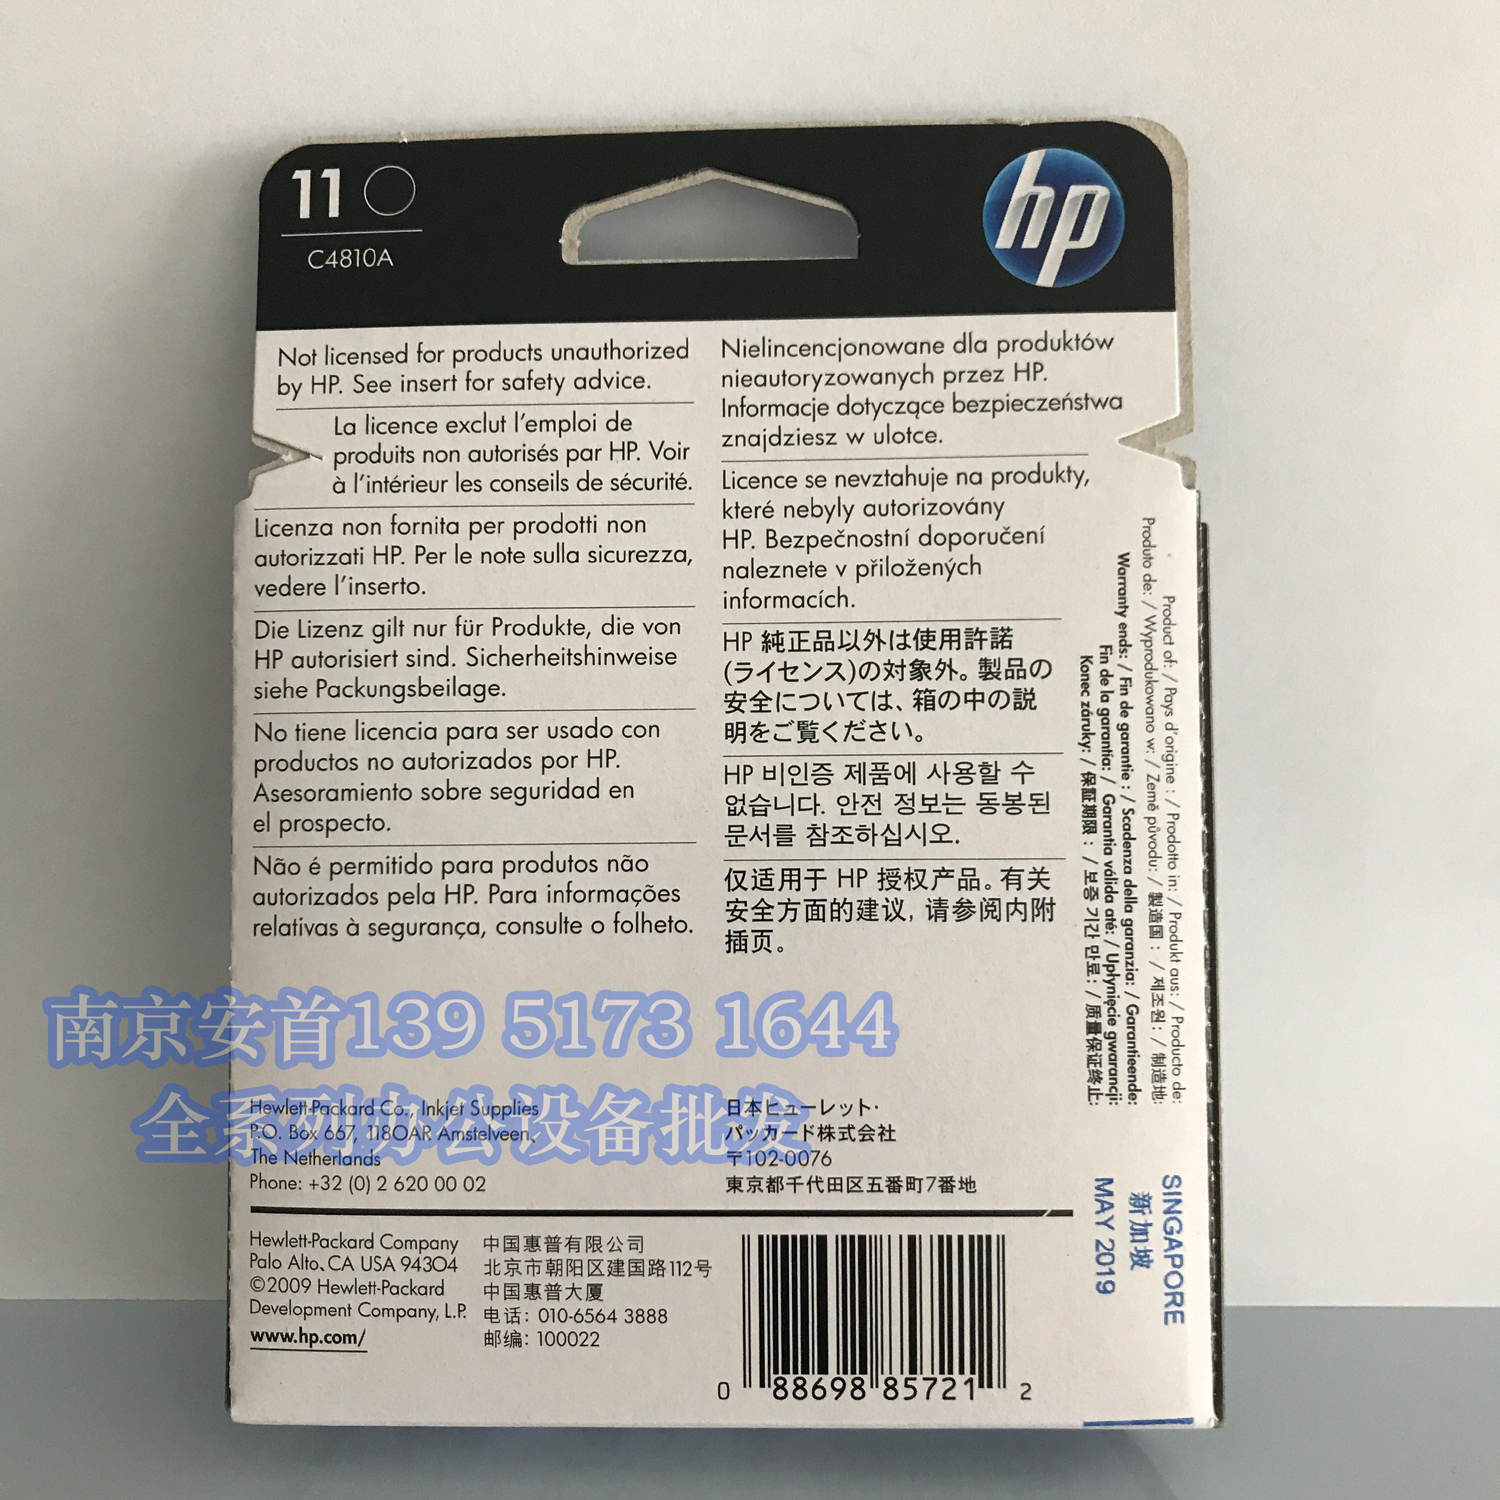 Usd 6478 National Hewlett Packard Hpc4810a 11 Black Print Head Hp 685 Ink Cartridge Cz121aa Model C4810a Color Classification Black11 C4811a Blue11 C4812a Red11 C4813a Yellow11 C4810 13 Set